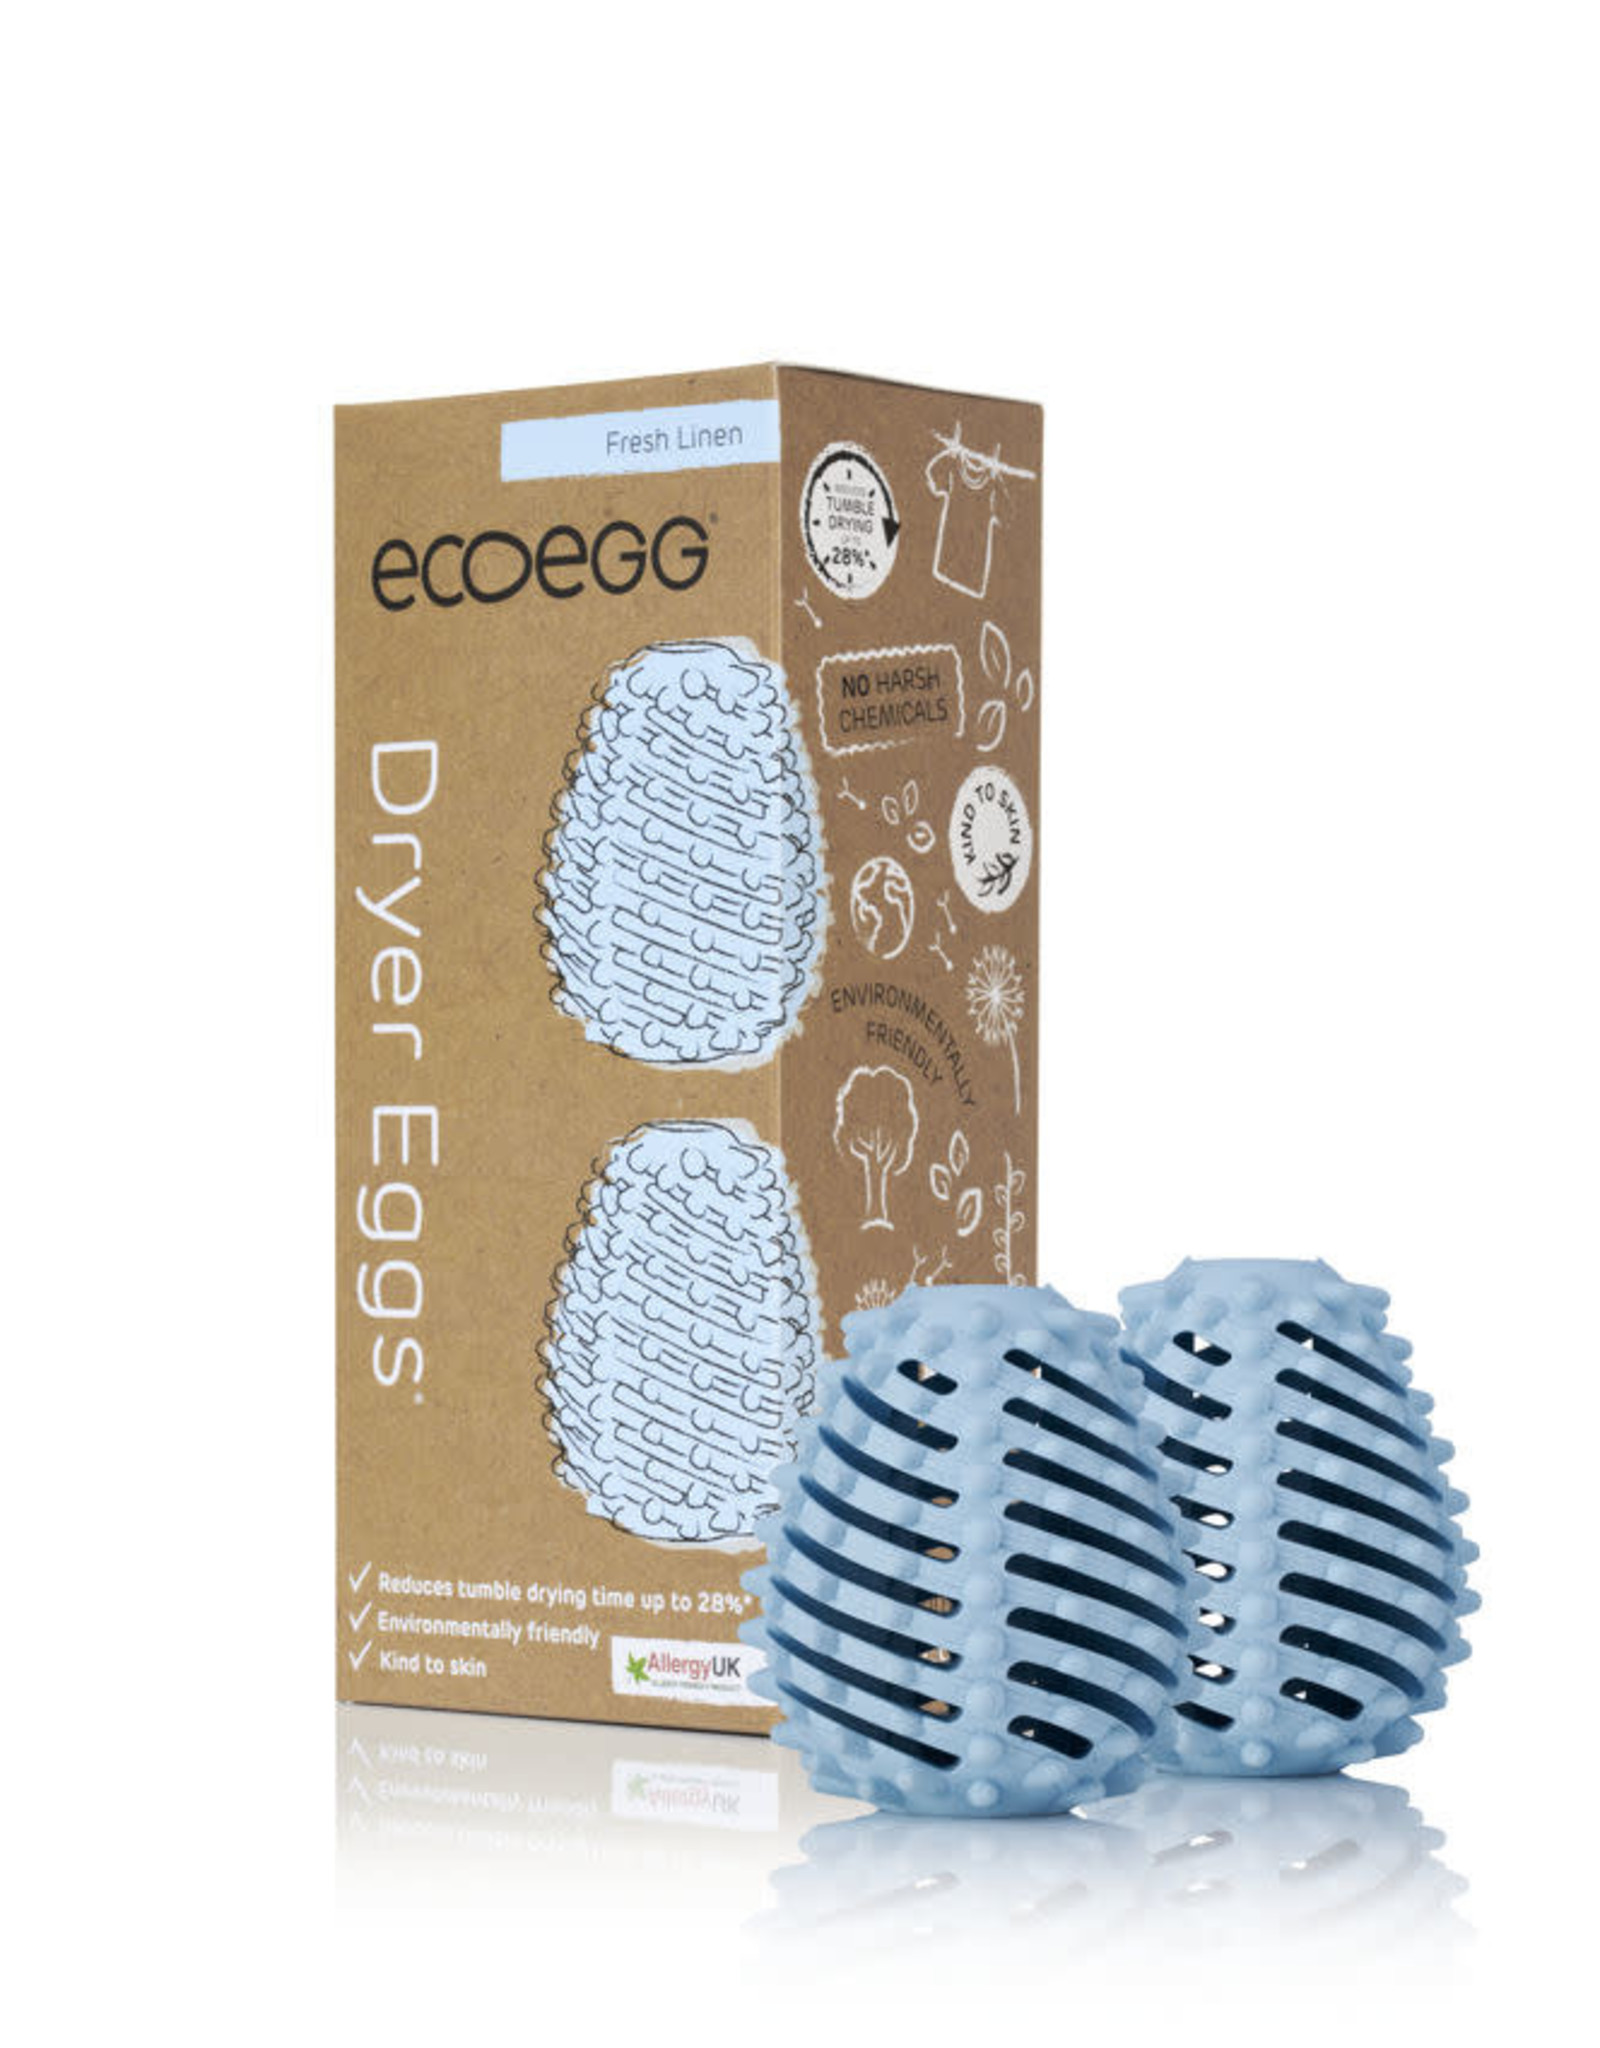 Ecoegg ecoegg Dryer Eggs: egg shaped dryer balls Fresh Linen